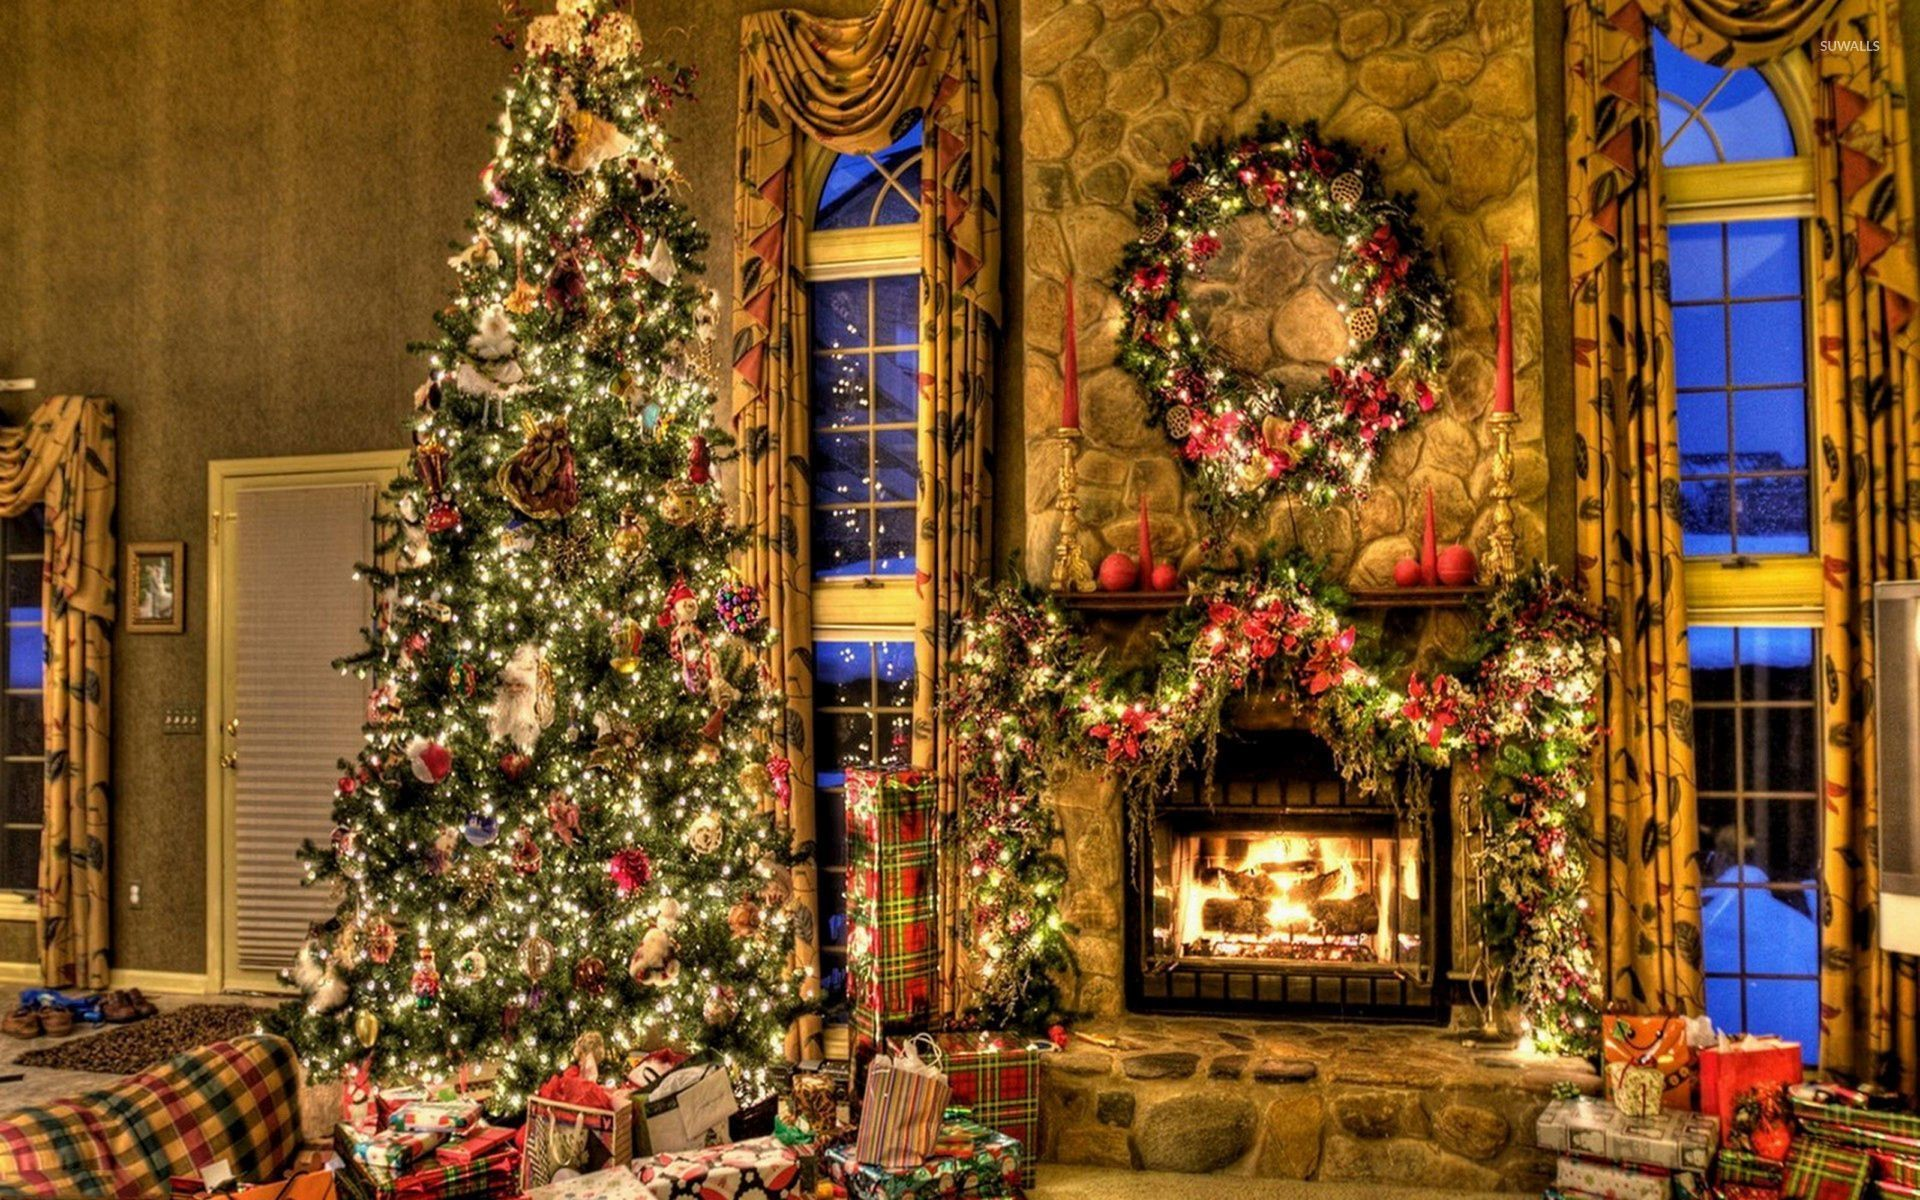 Res: 1920x1200, Beautiful Christmas tree by the fireplace wallpaper